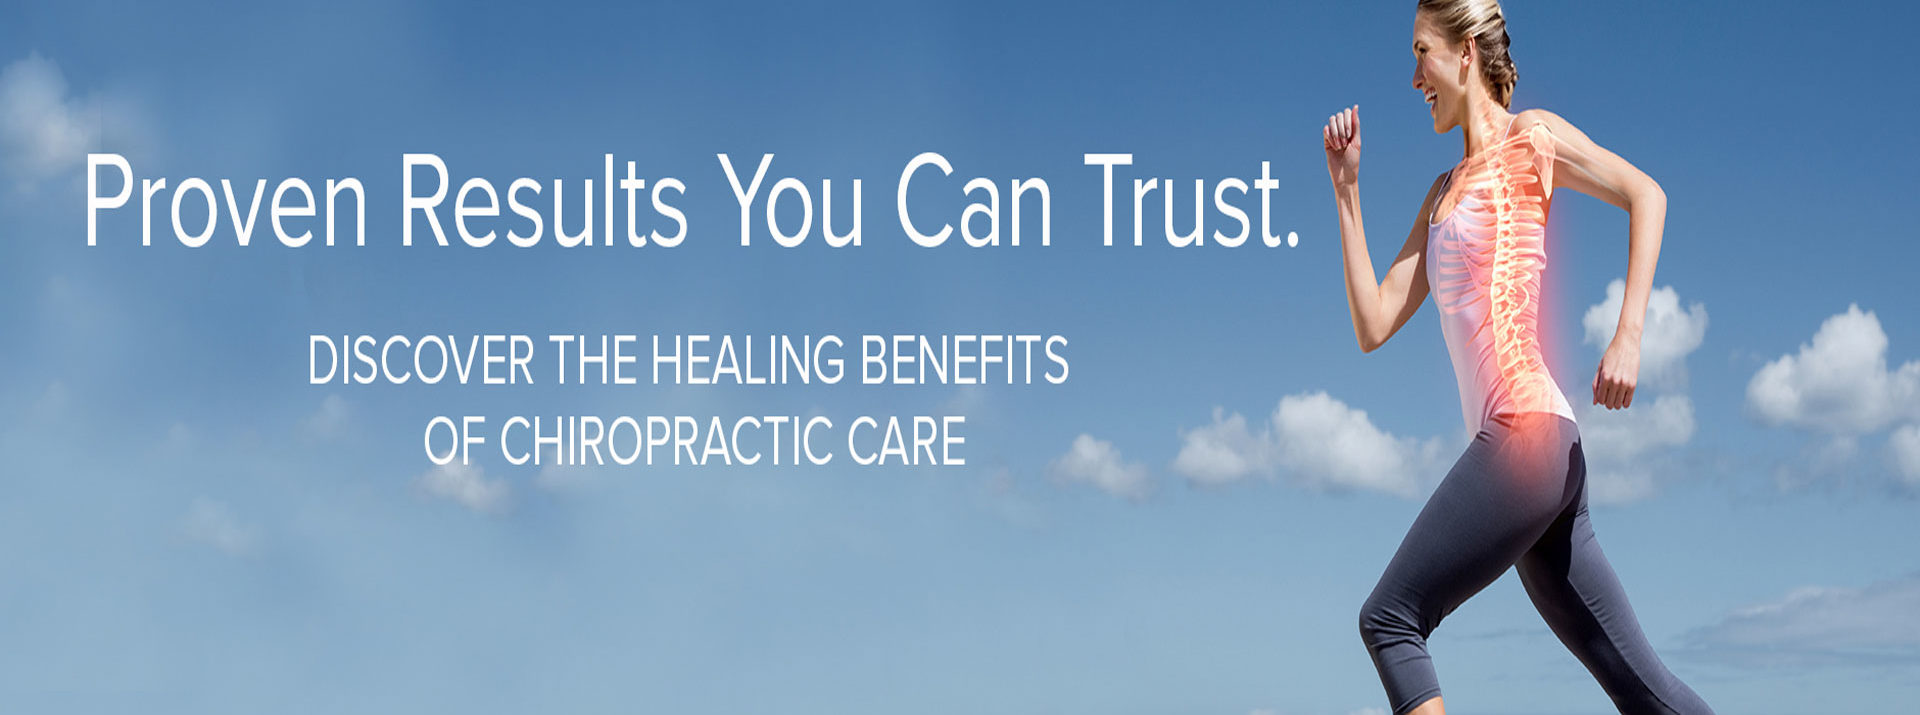 Urgent Care Services - Return To Health Medical - Chiropractic - Urgent Care - Wellness